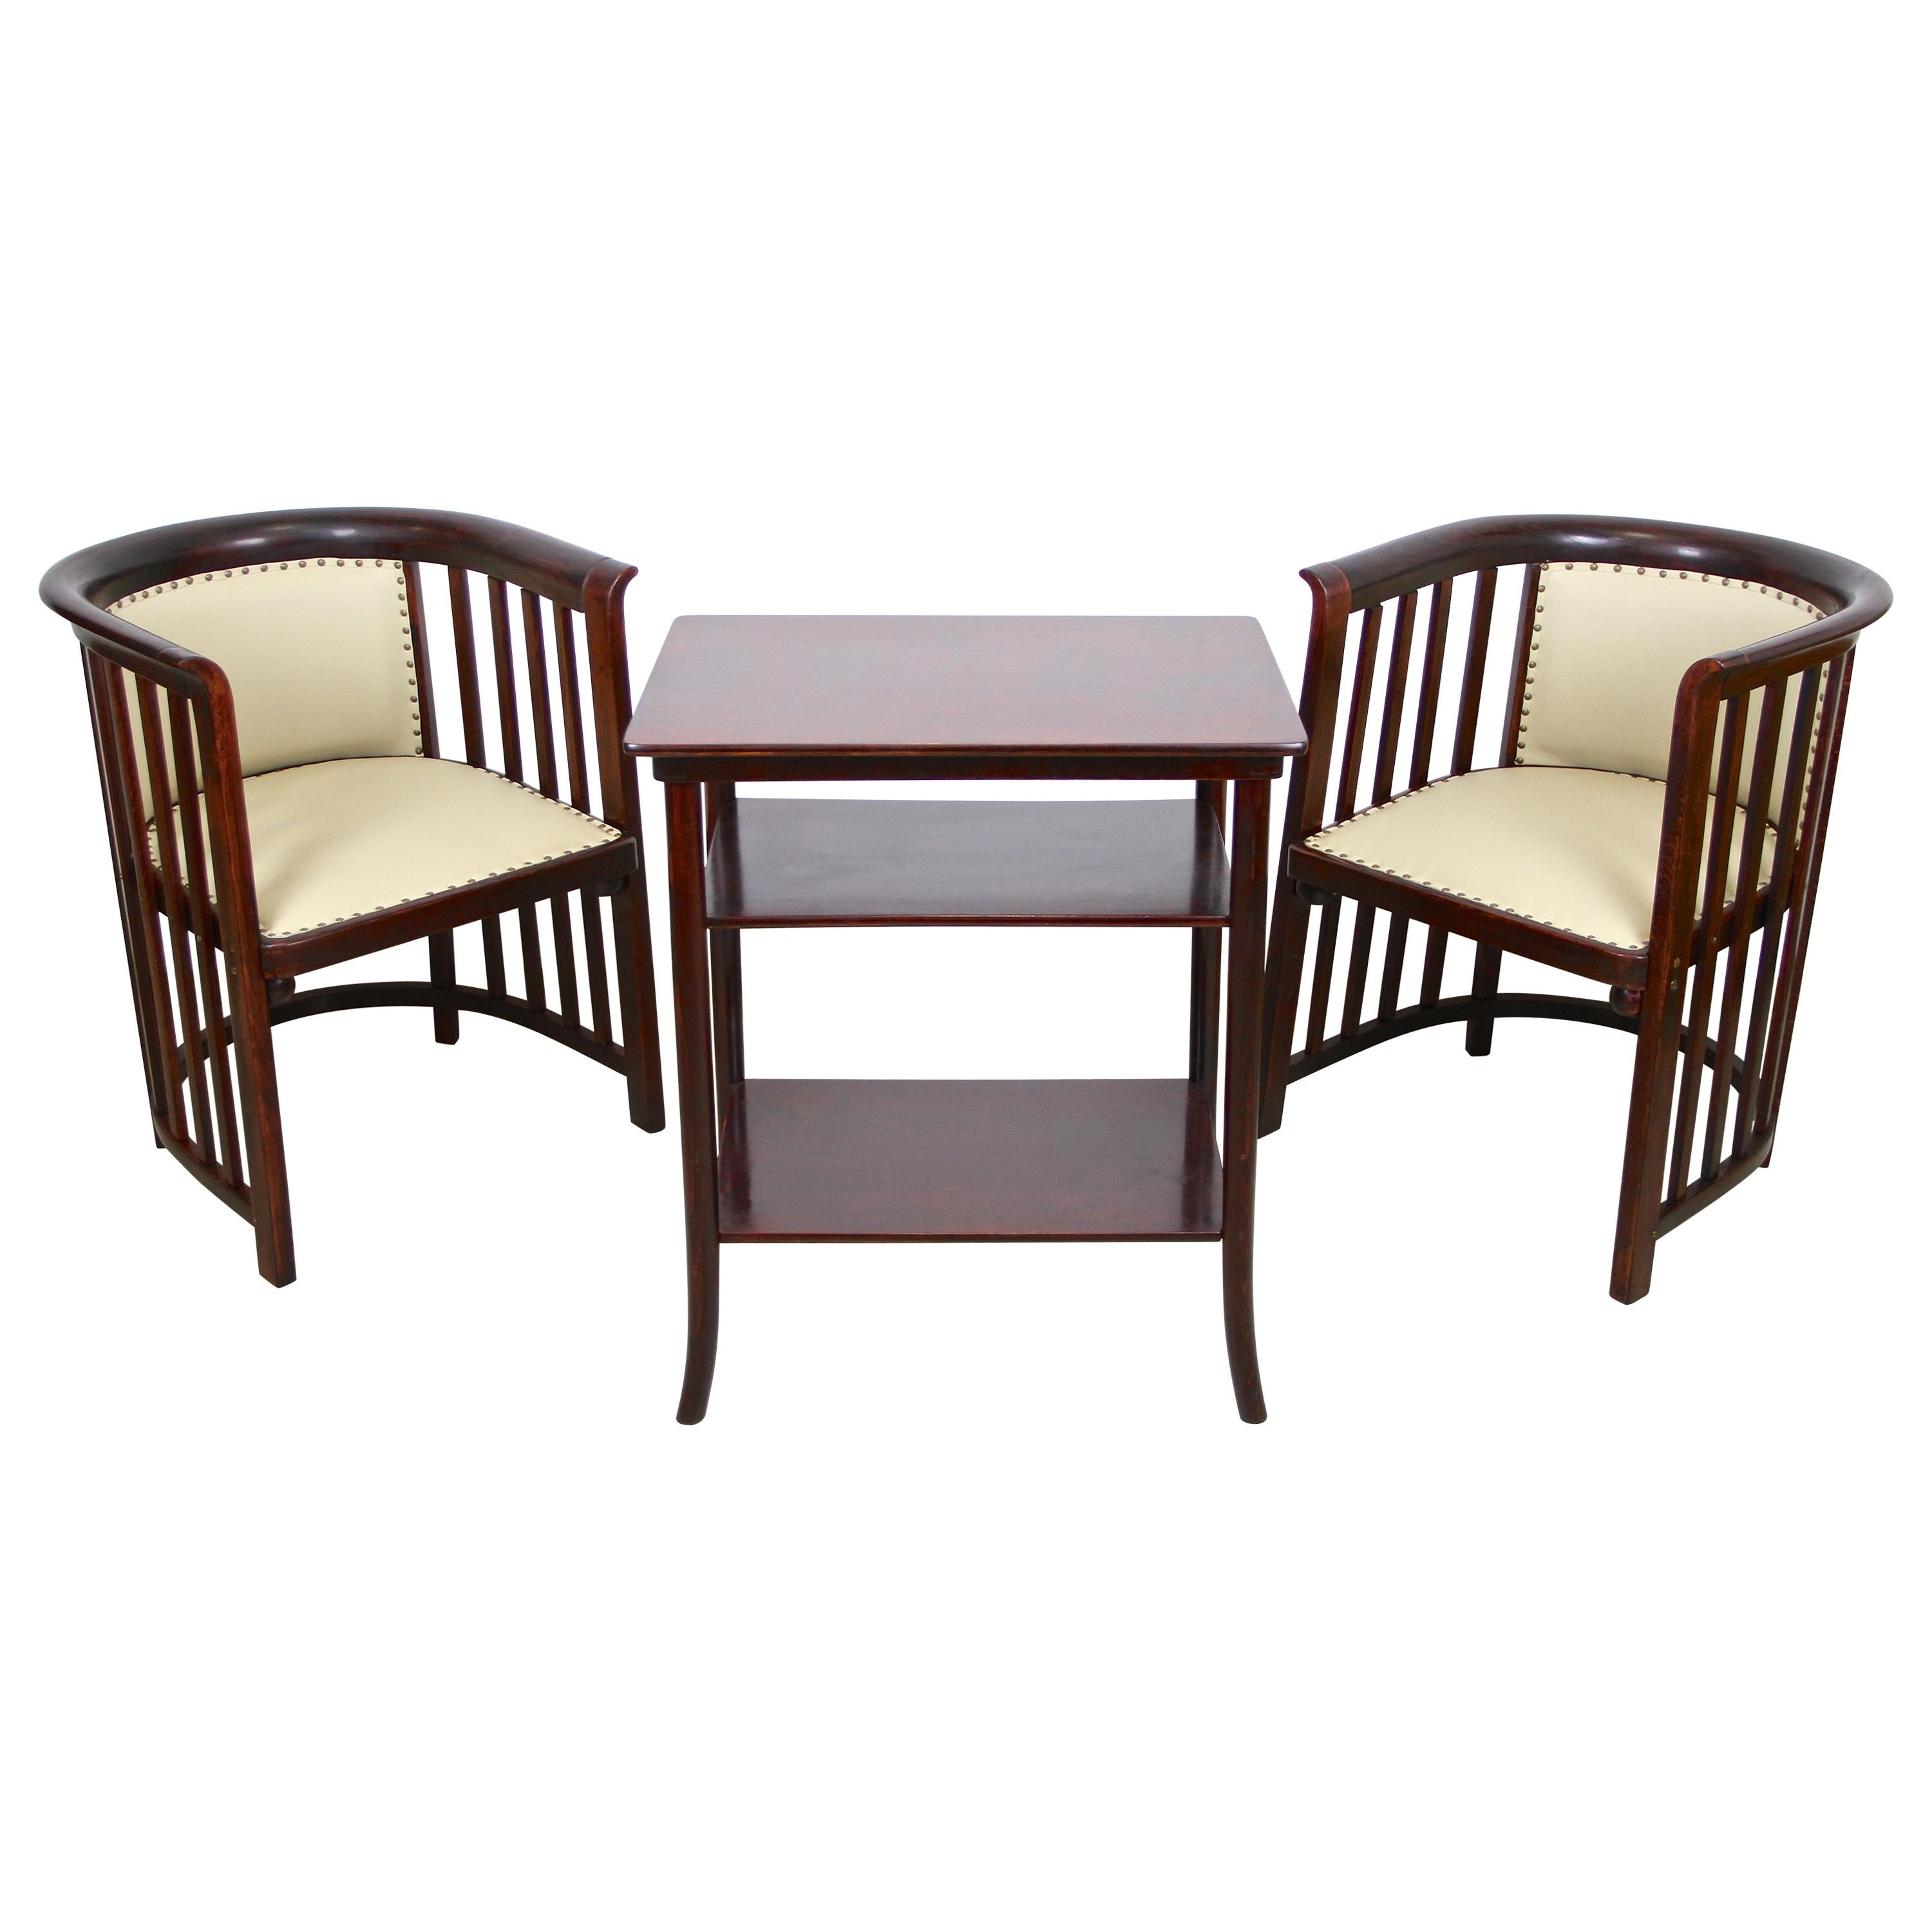 Pair of Bentwood Armchairs by J. Hoffmann and Thonet Table, Austria, circa 1905